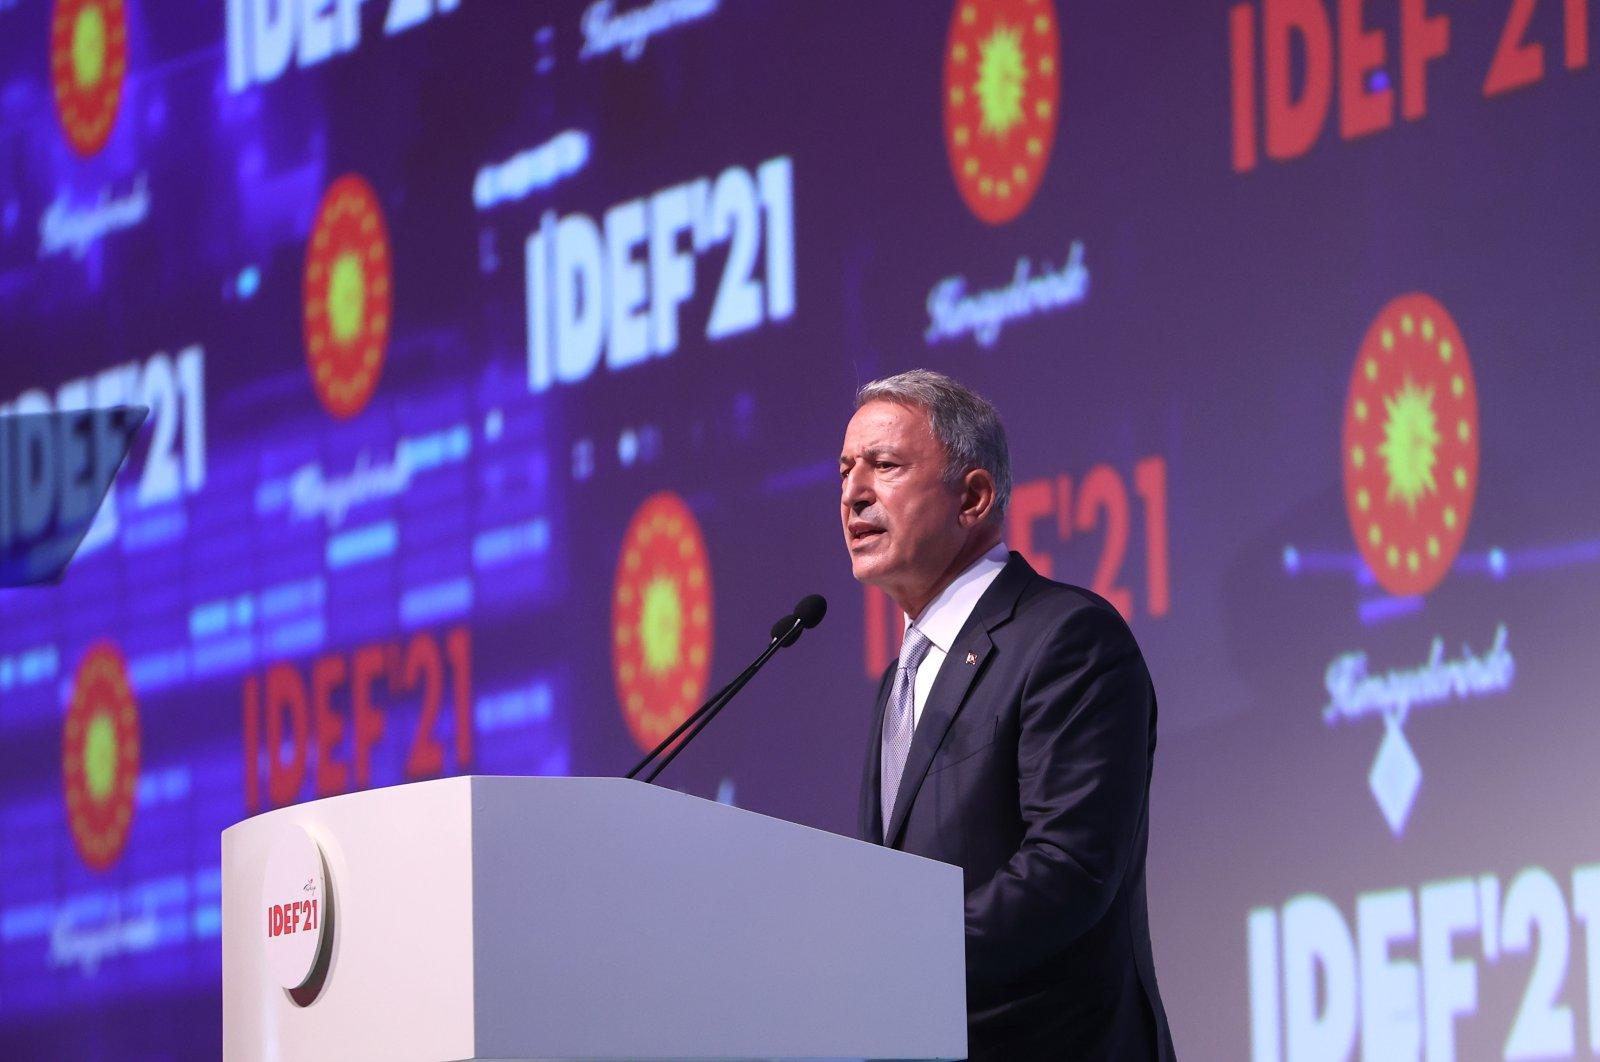 Defense Minister Hulusi Akar speaks during the opening of the International Defense Industry Fair (IDEF), Istanbul, Turkey, Aug. 17, 2021. (AA Photo)